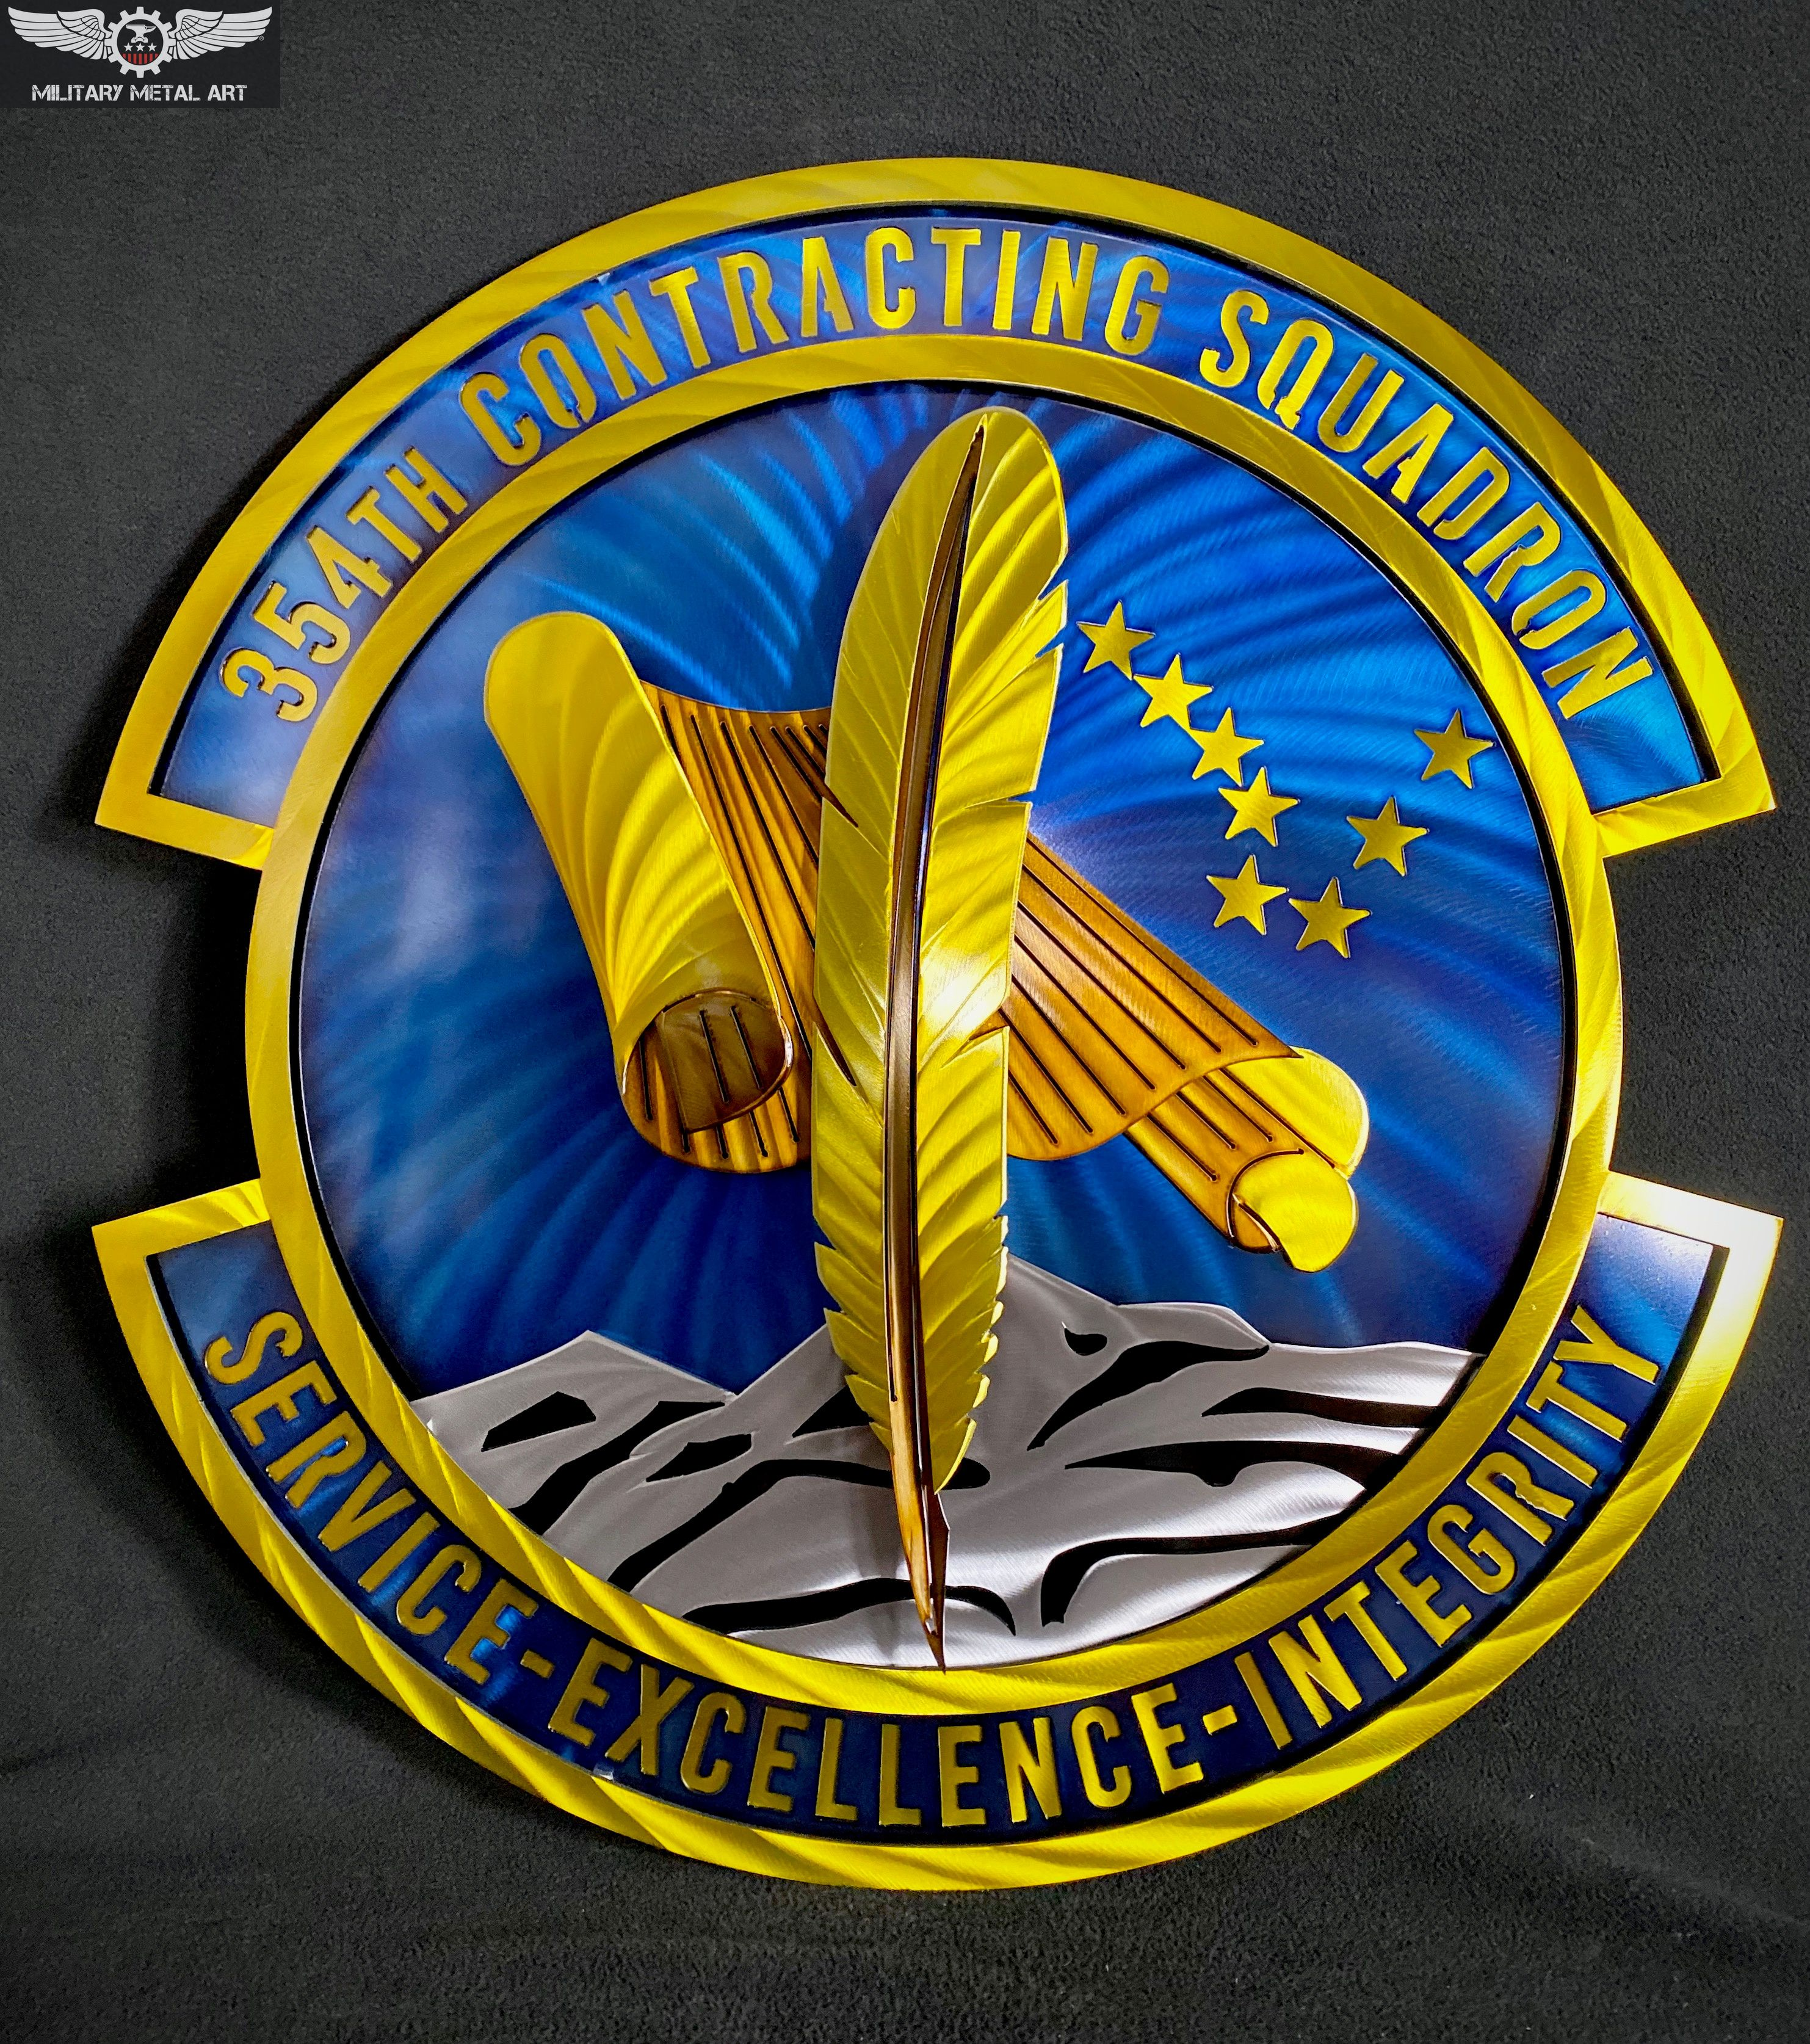 Image result for military metal art